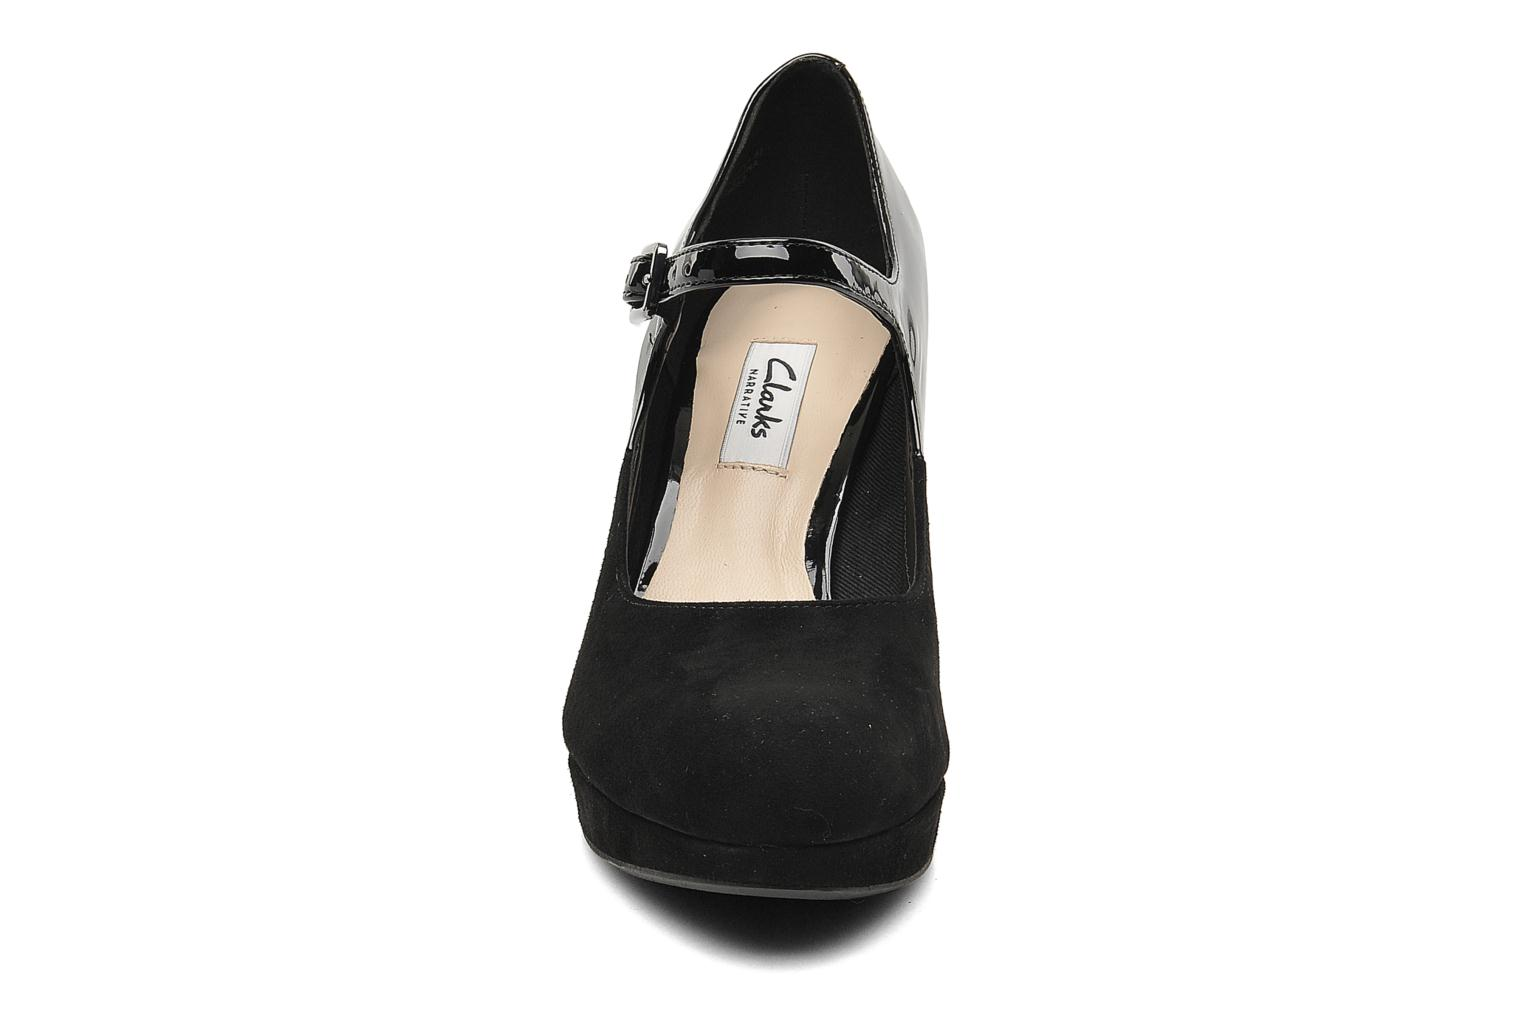 Angie Kendra Black combi sde